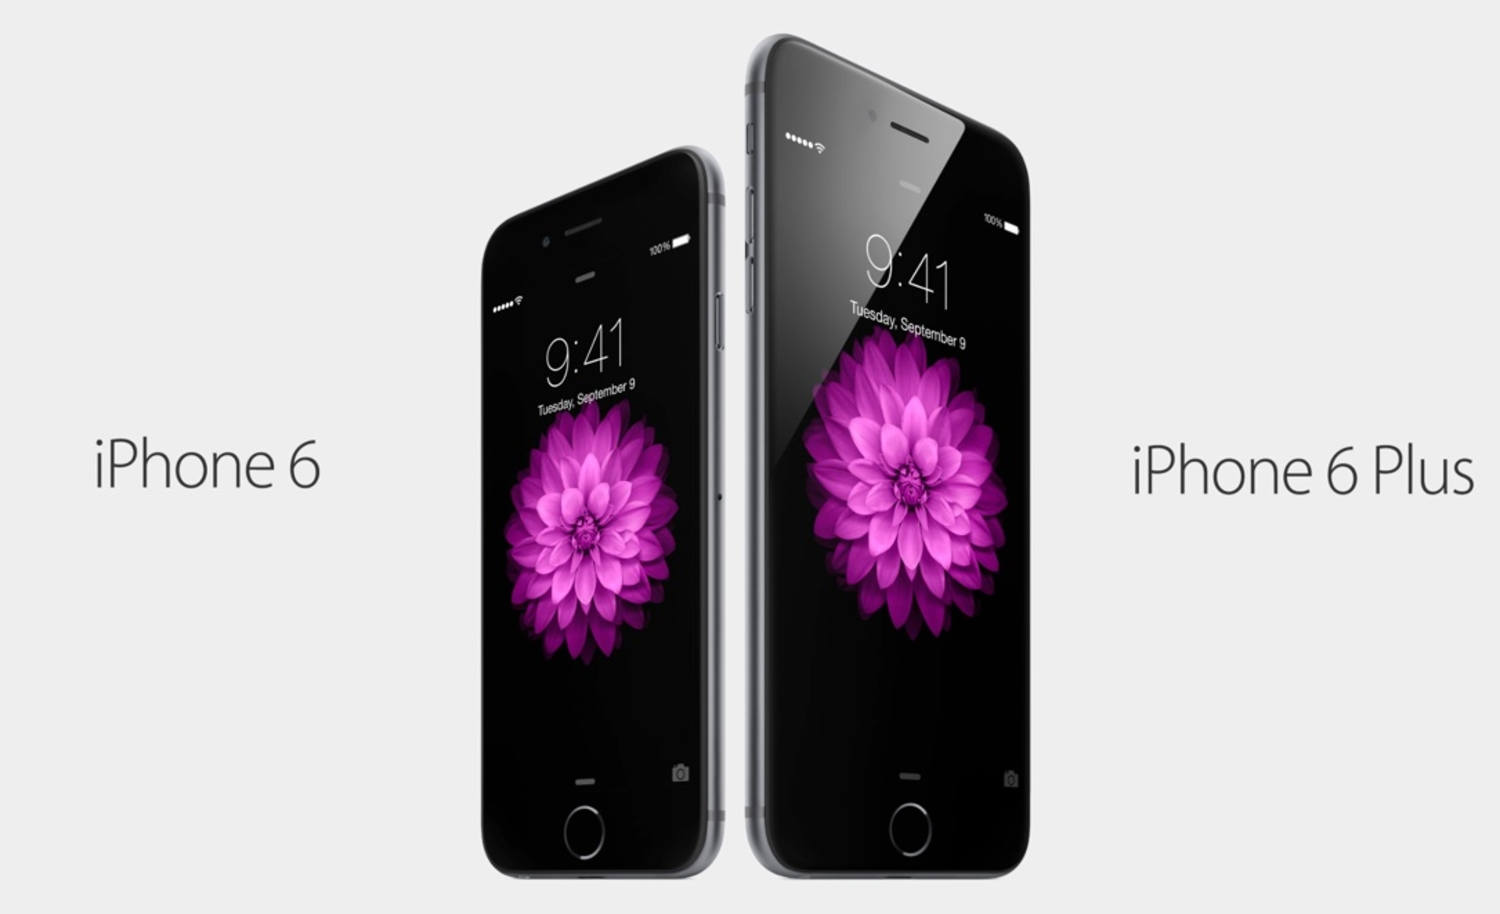 iPhone 6 Plus - Apple's Biggest iPhone Revealed!